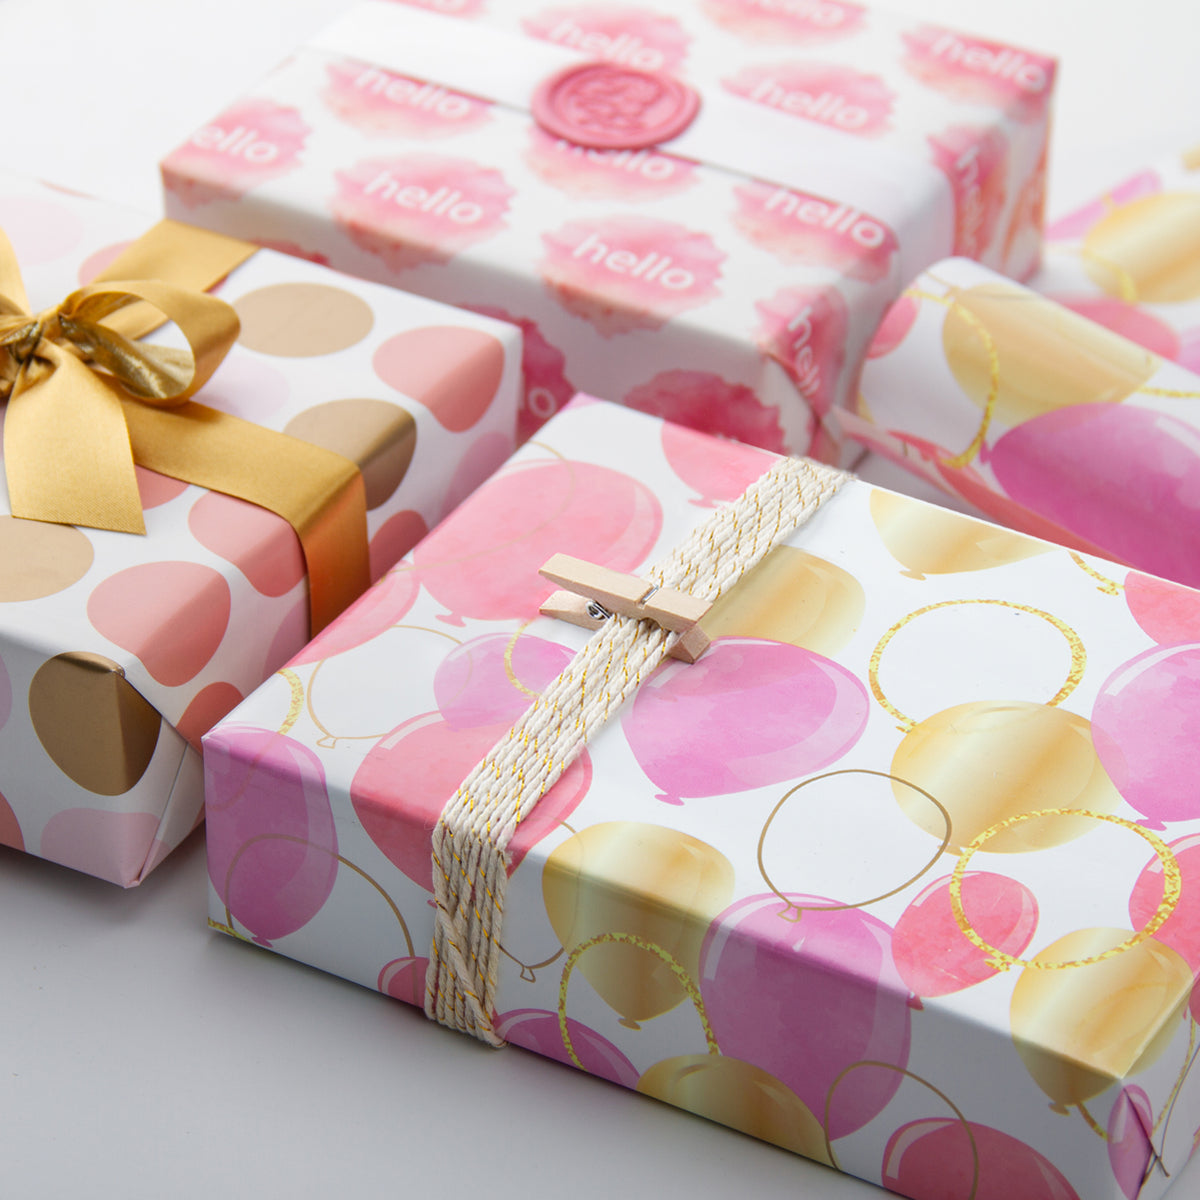 Wrapaholic-Pink-Purple-Gold-Print-Celebrating-Balloon-Design Gift-Wrapping-Paper-Roll-5